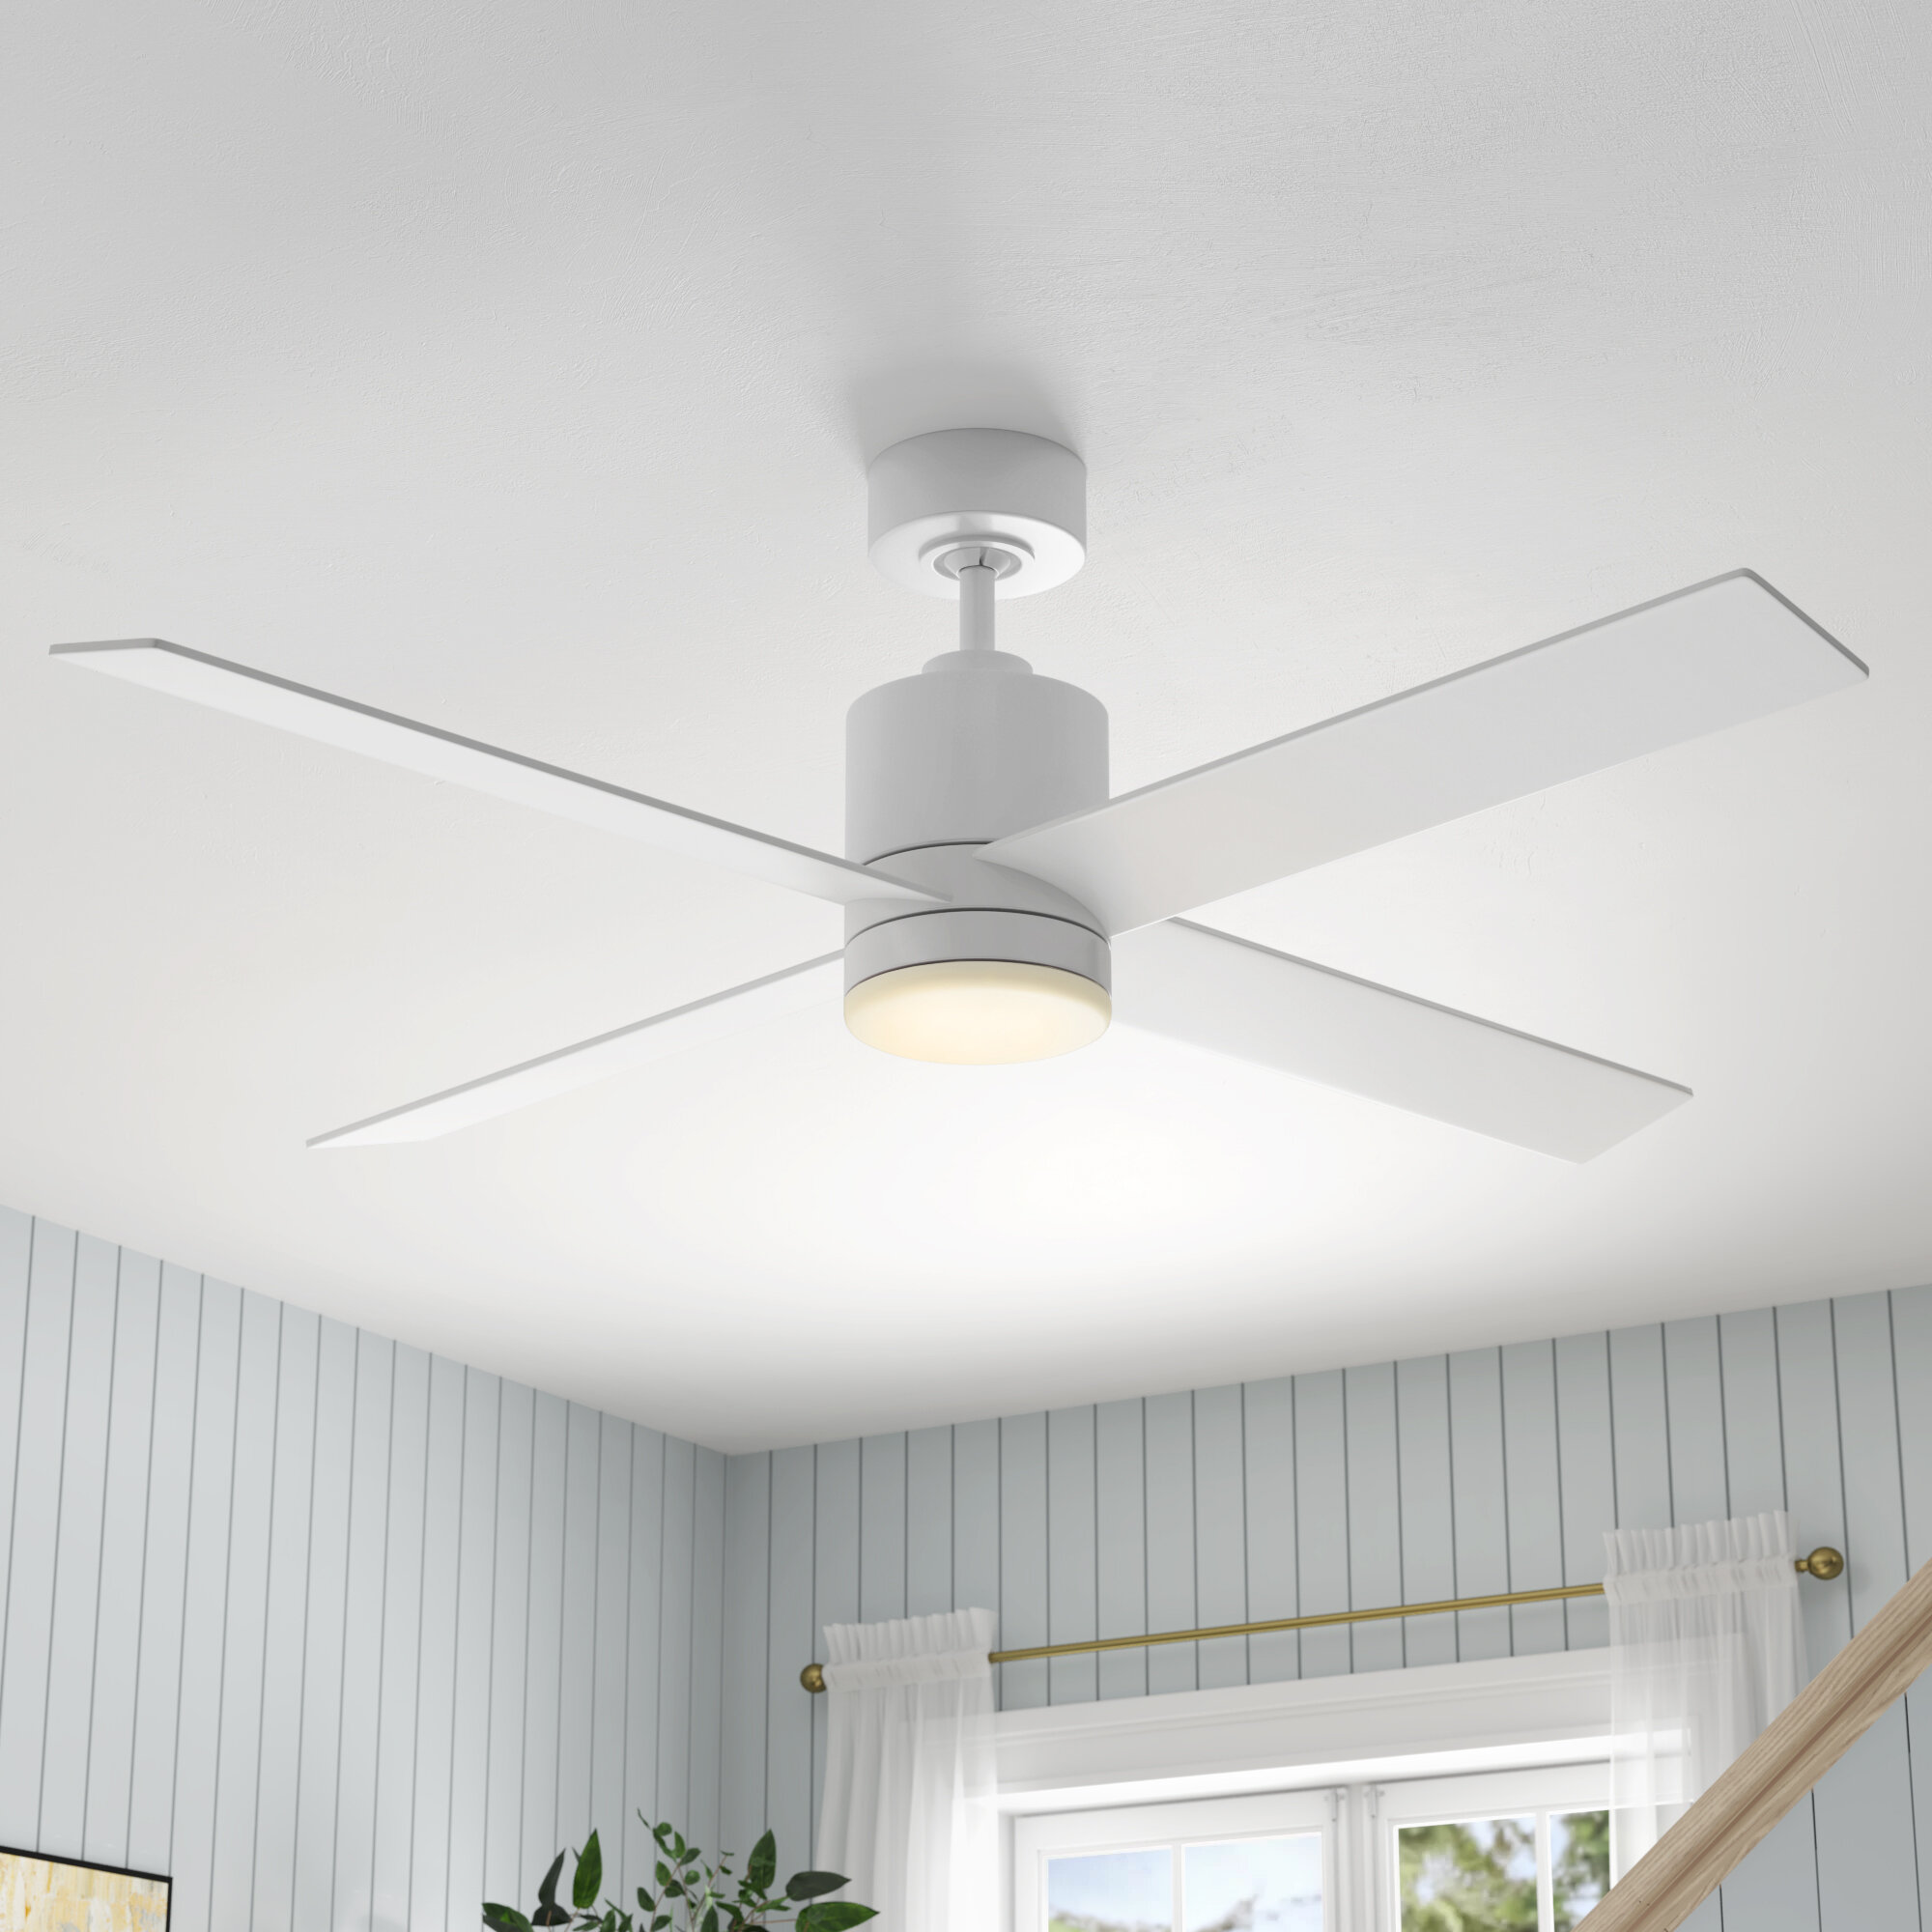 52 Rinke 4 Blade Ceiling Fan